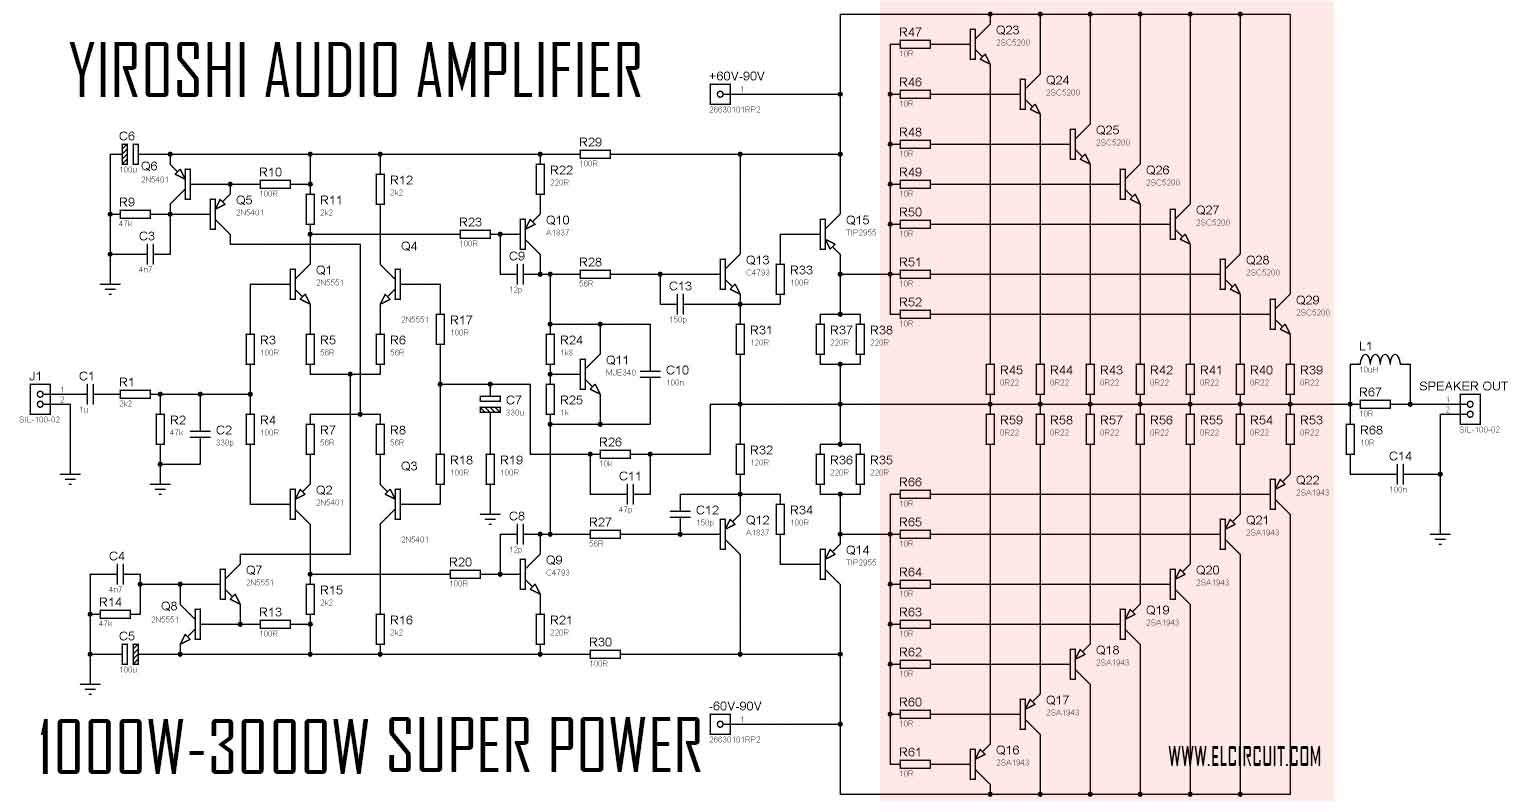 super power amplifier yiroshi audio 1000 watt trong 2018 ampliyiroshi audio power amplifier circuit diagram